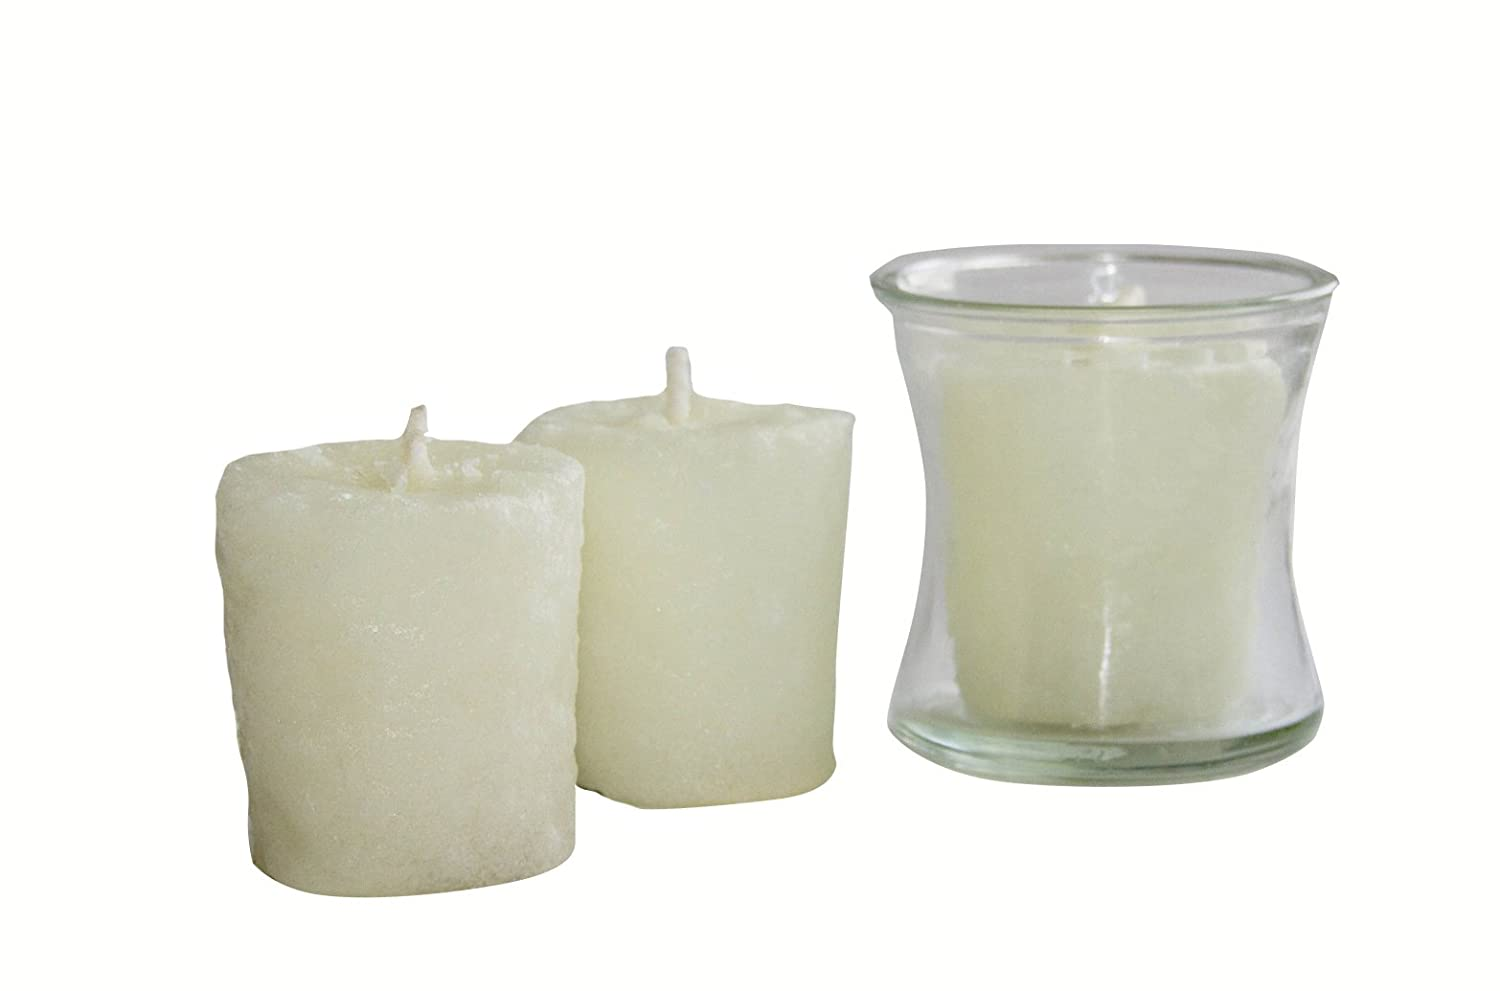 Warm Glow Candle Company White Cherry Cheesecake Scent Chips 2 Pack